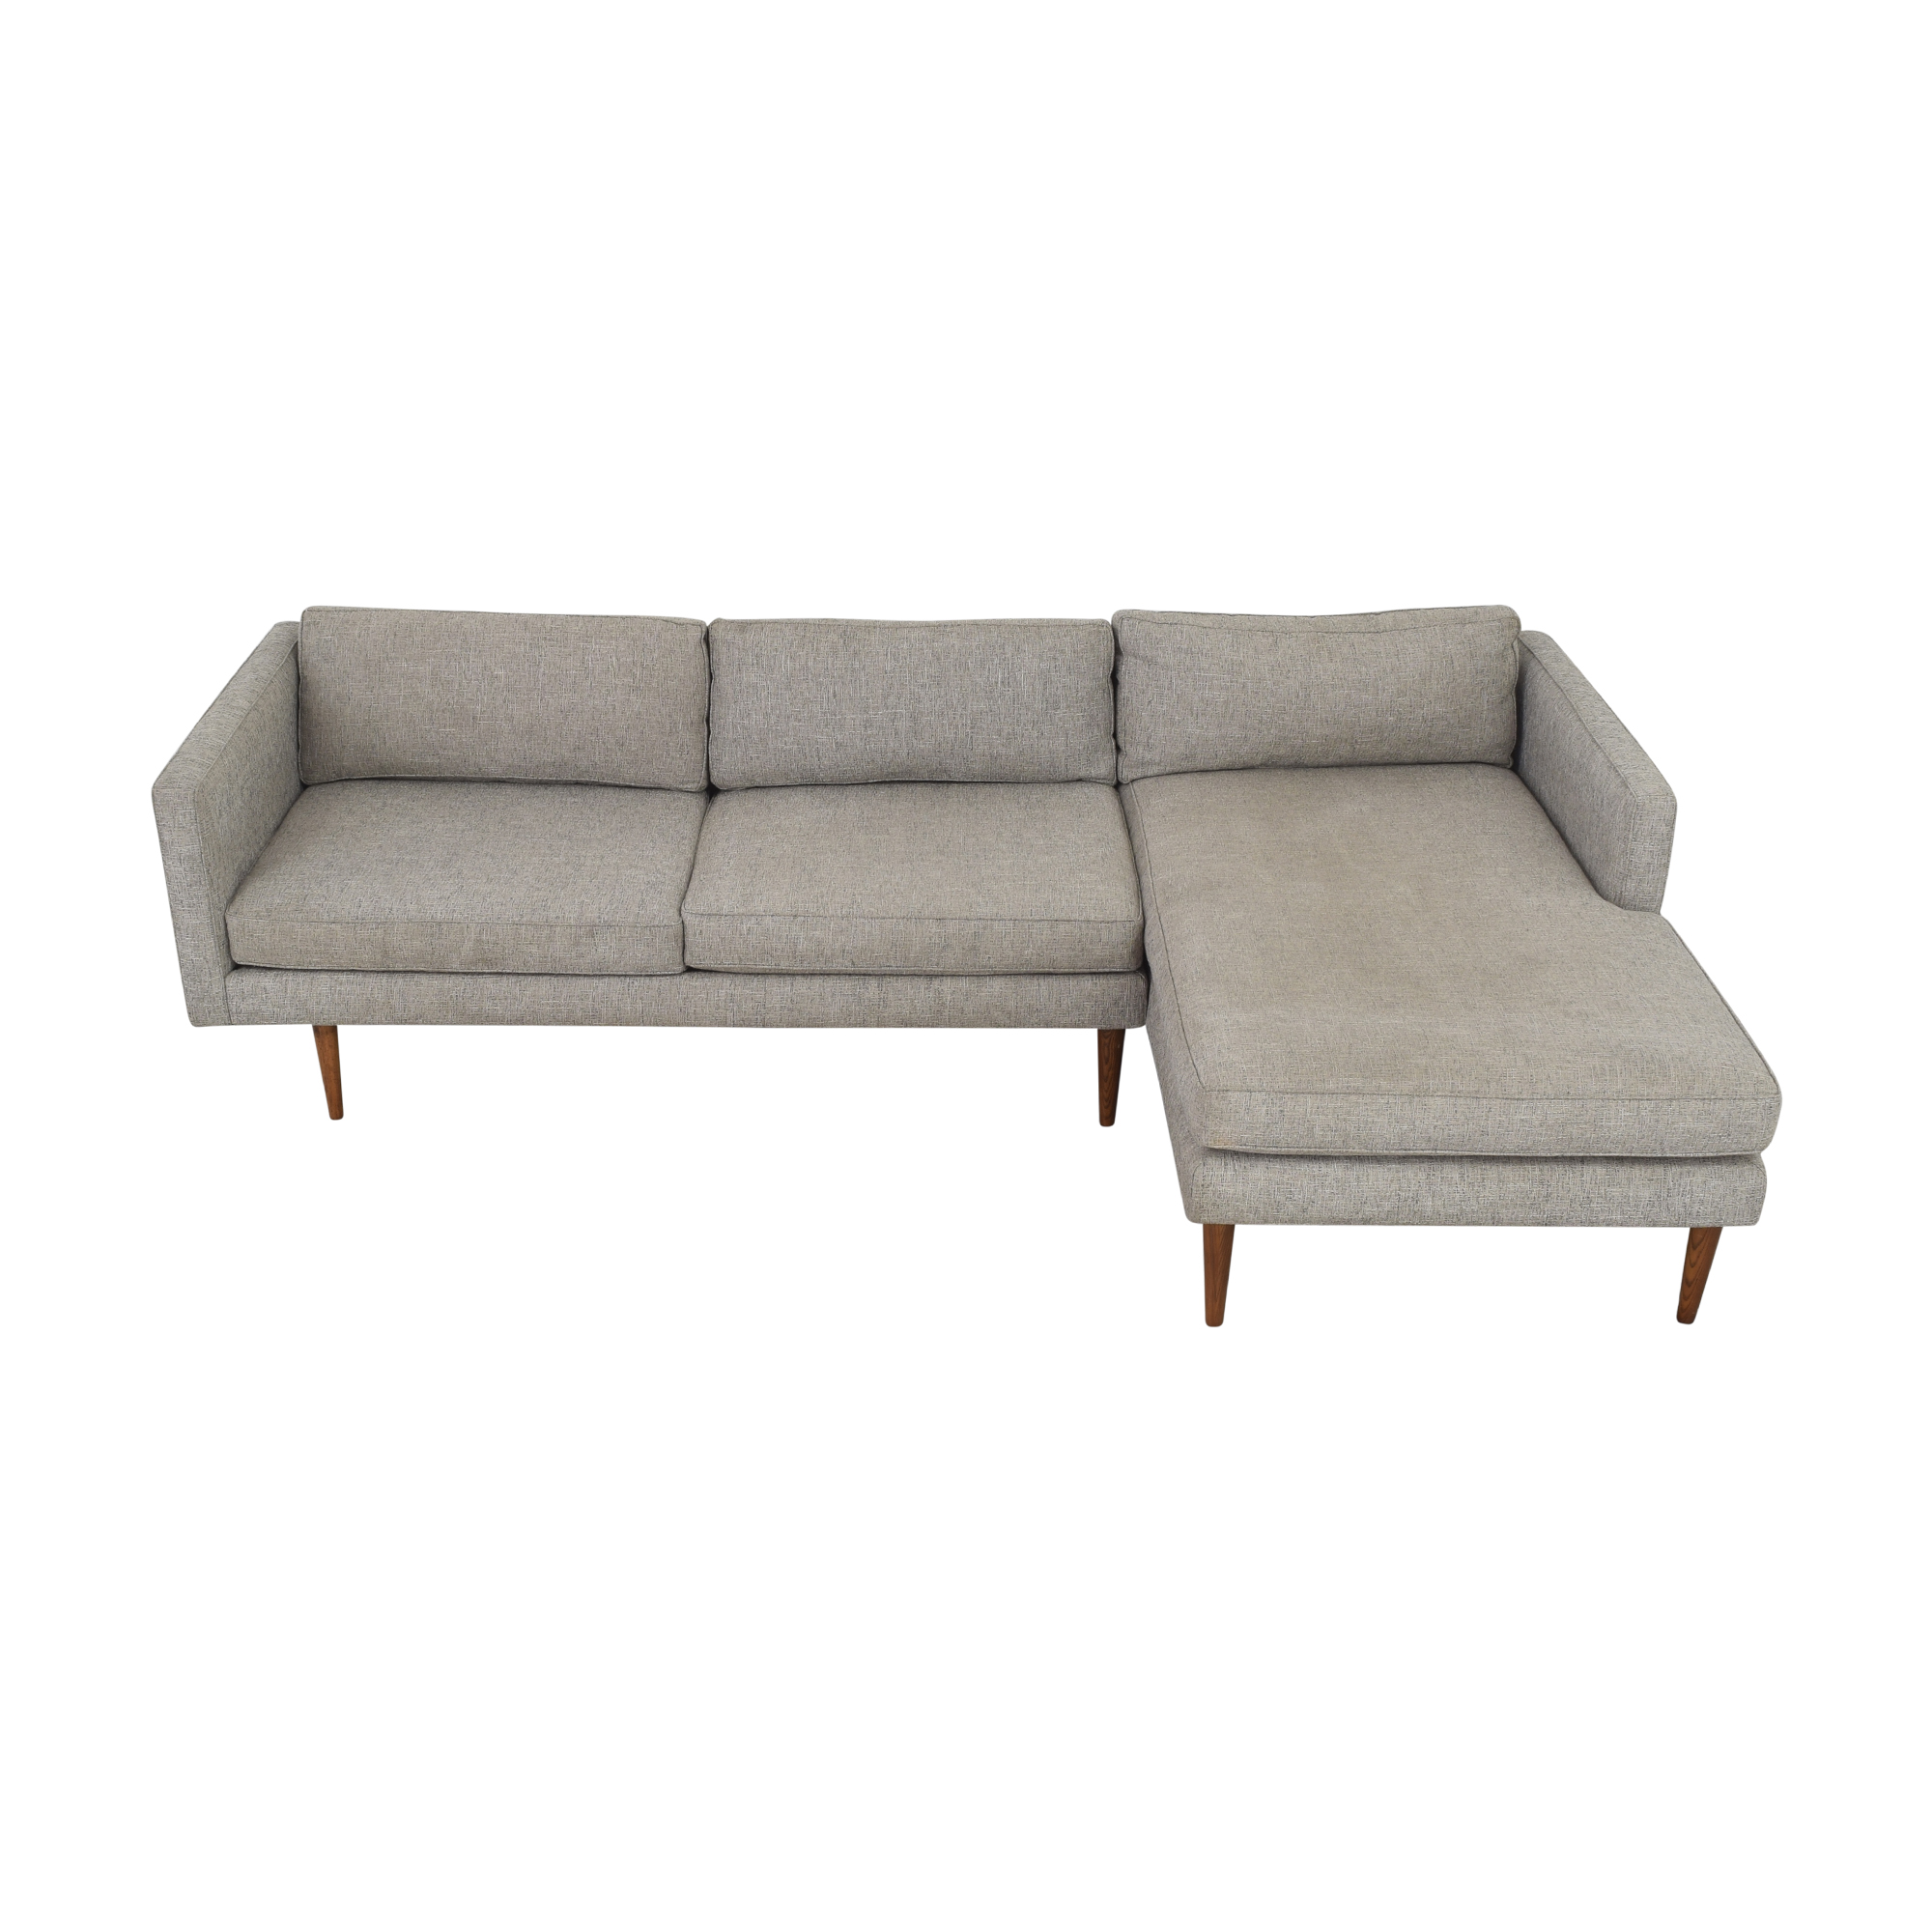 shop West Elm West Elm Sectional Sofa with Chaise online